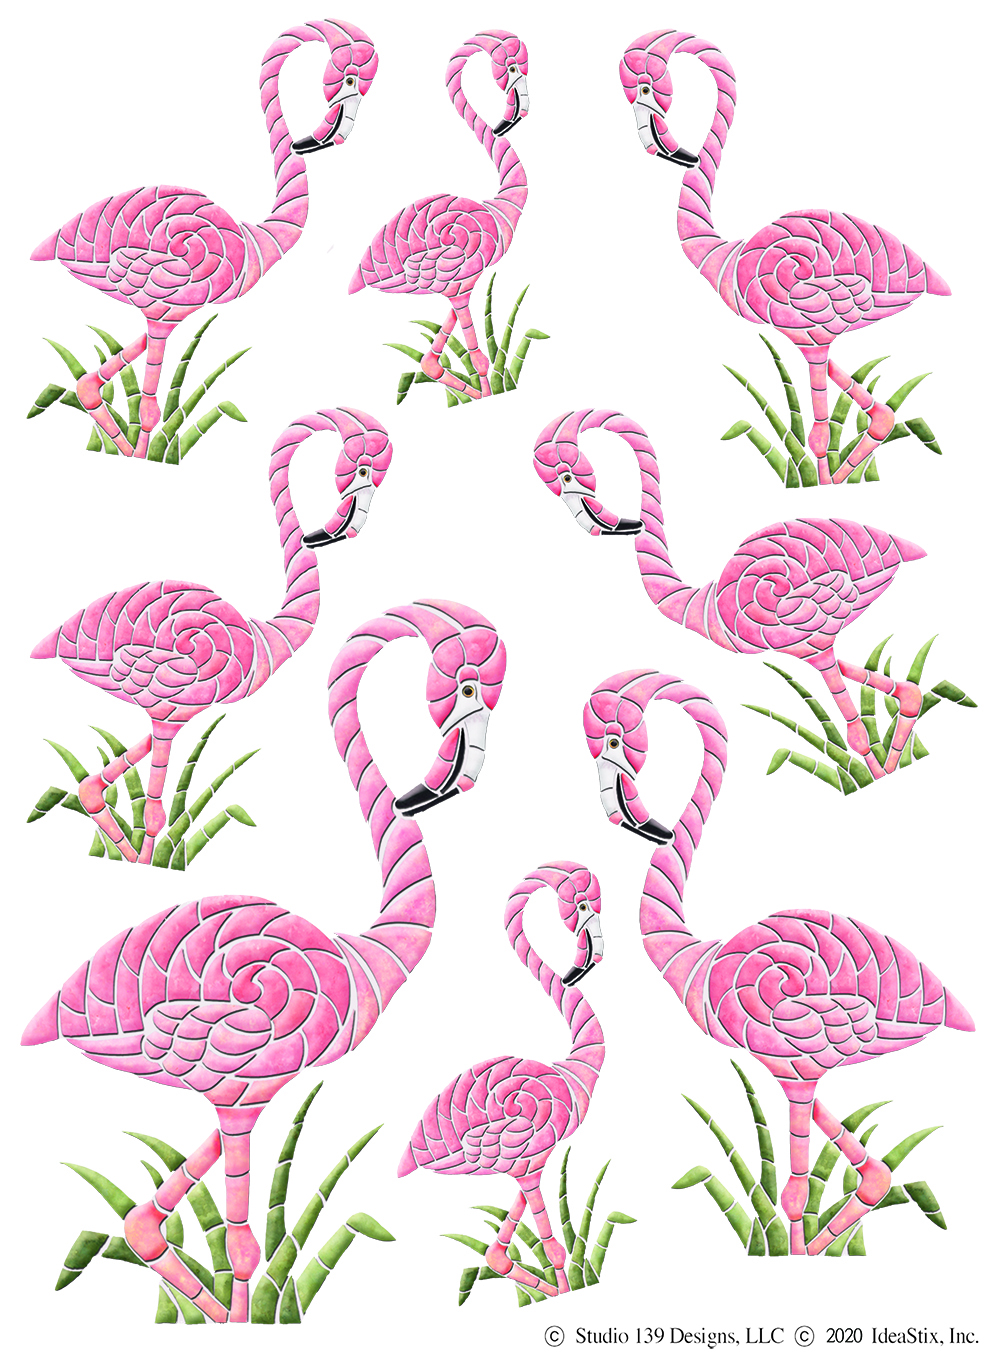 IdeaStix Flamingo 2-Sheet Accents - Original Premium Peel and Stick D??cor